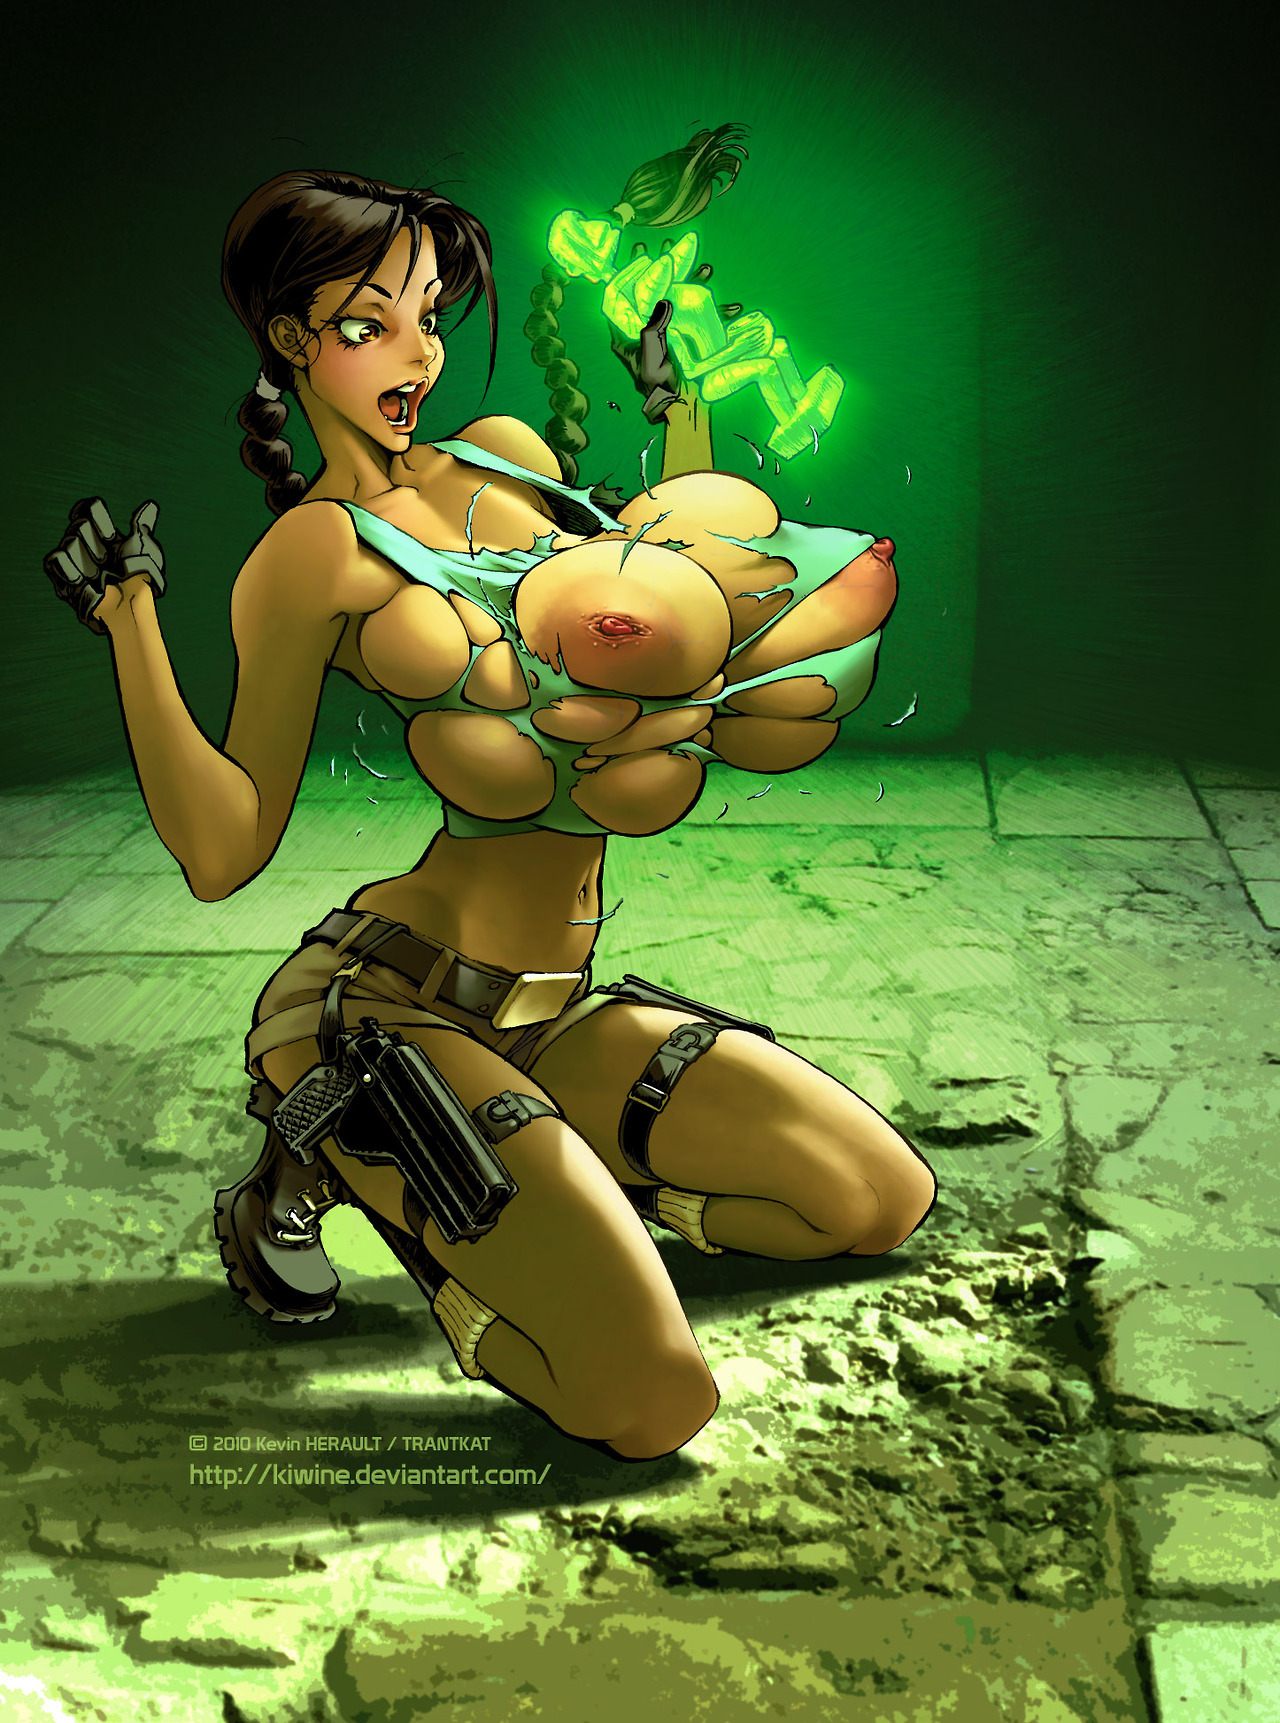 Comic croft hentai lara